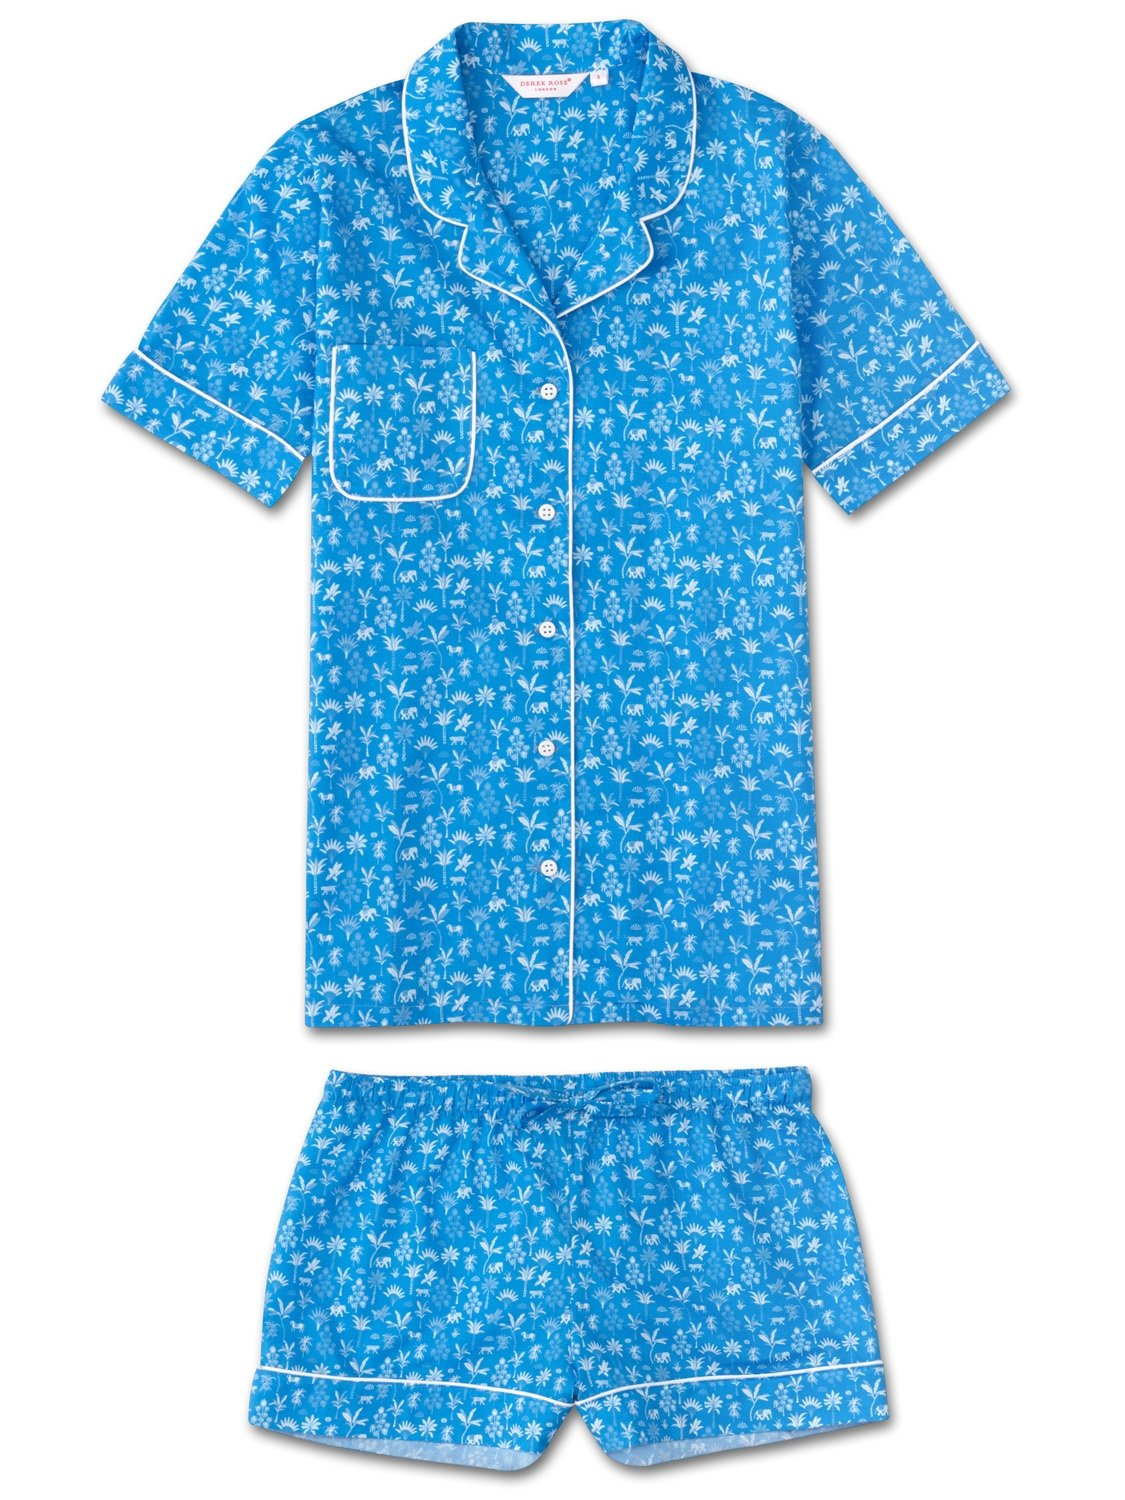 Women's Shortie Pyjamas Ledbury 8 Cotton Batiste Blue